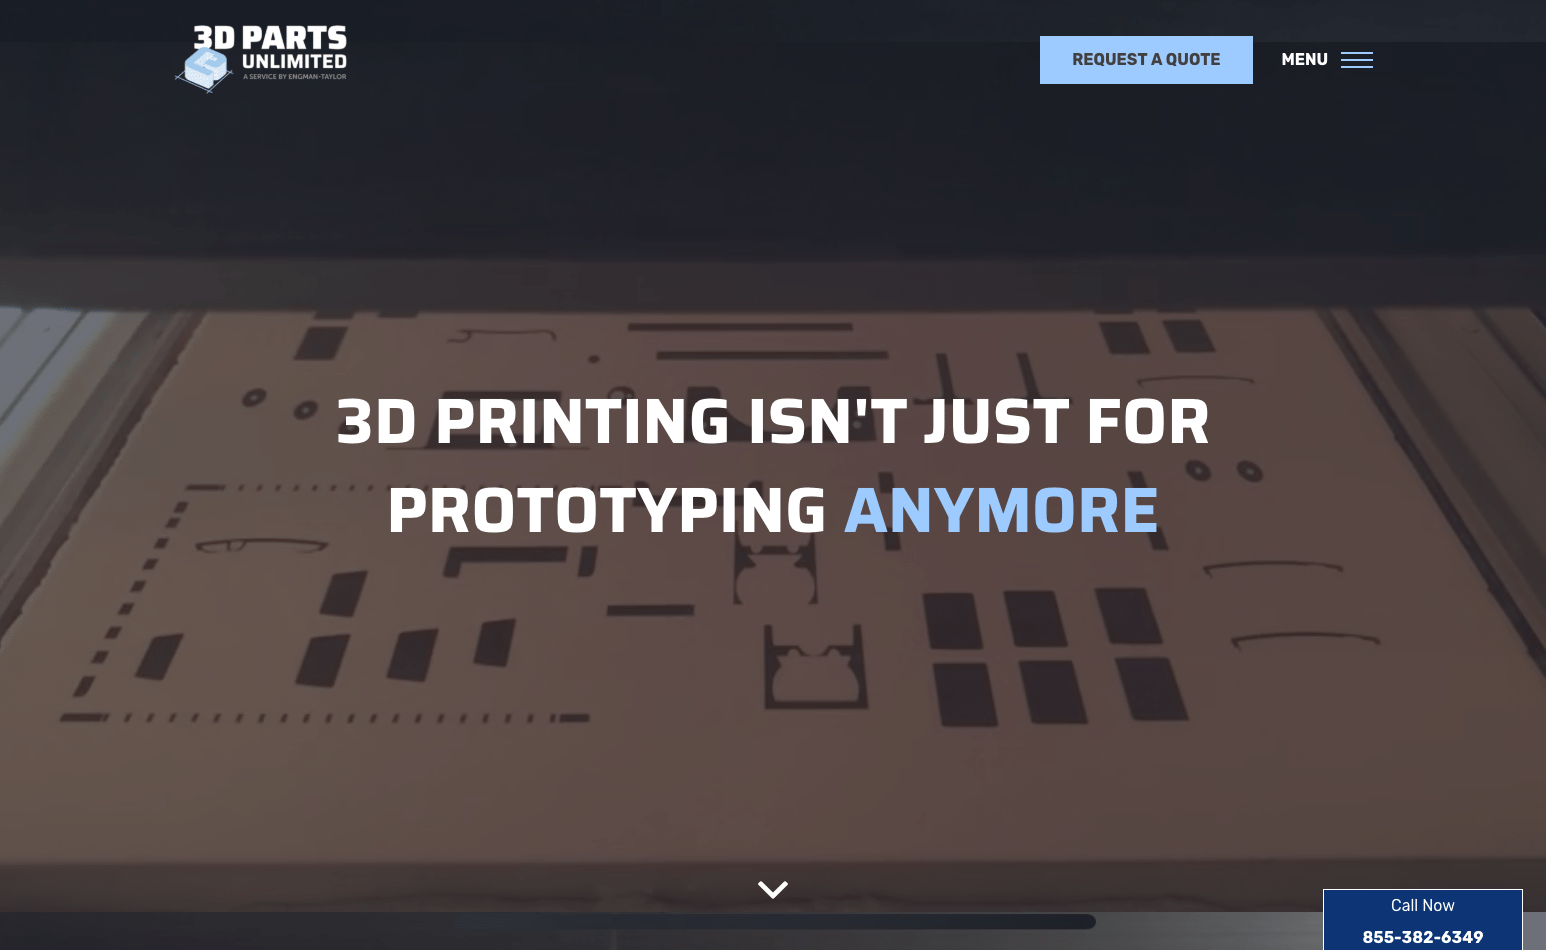 3D Parts Unlimited quote webpage